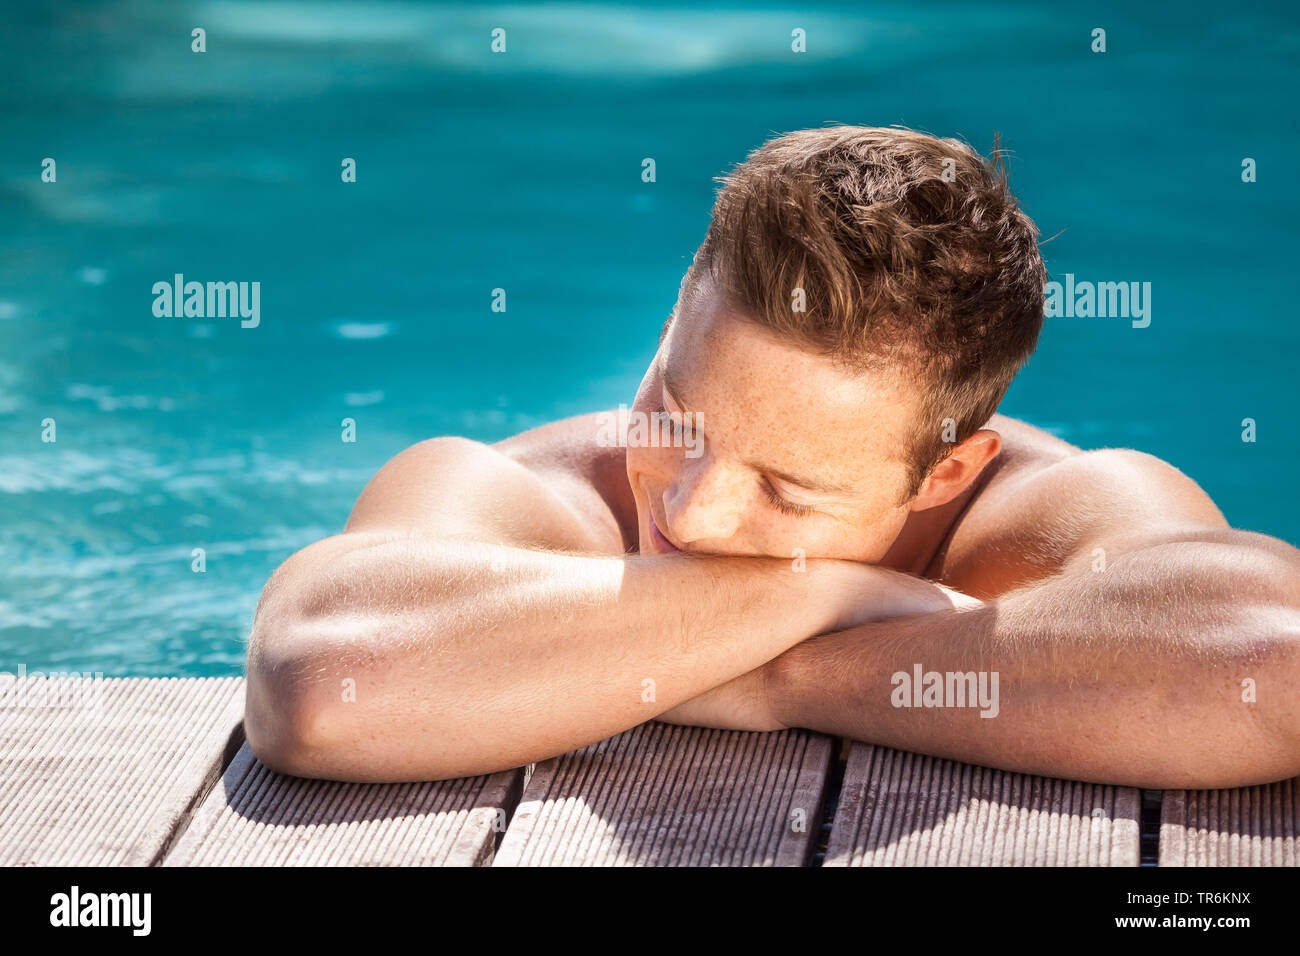 junger dunkelblonder Mann am Beckenrand eines Swimmingpools, Deutschland | young blond man in a swimming pool, Germany | BLWS486394.jpg [ (c) blickwin - Stock Image